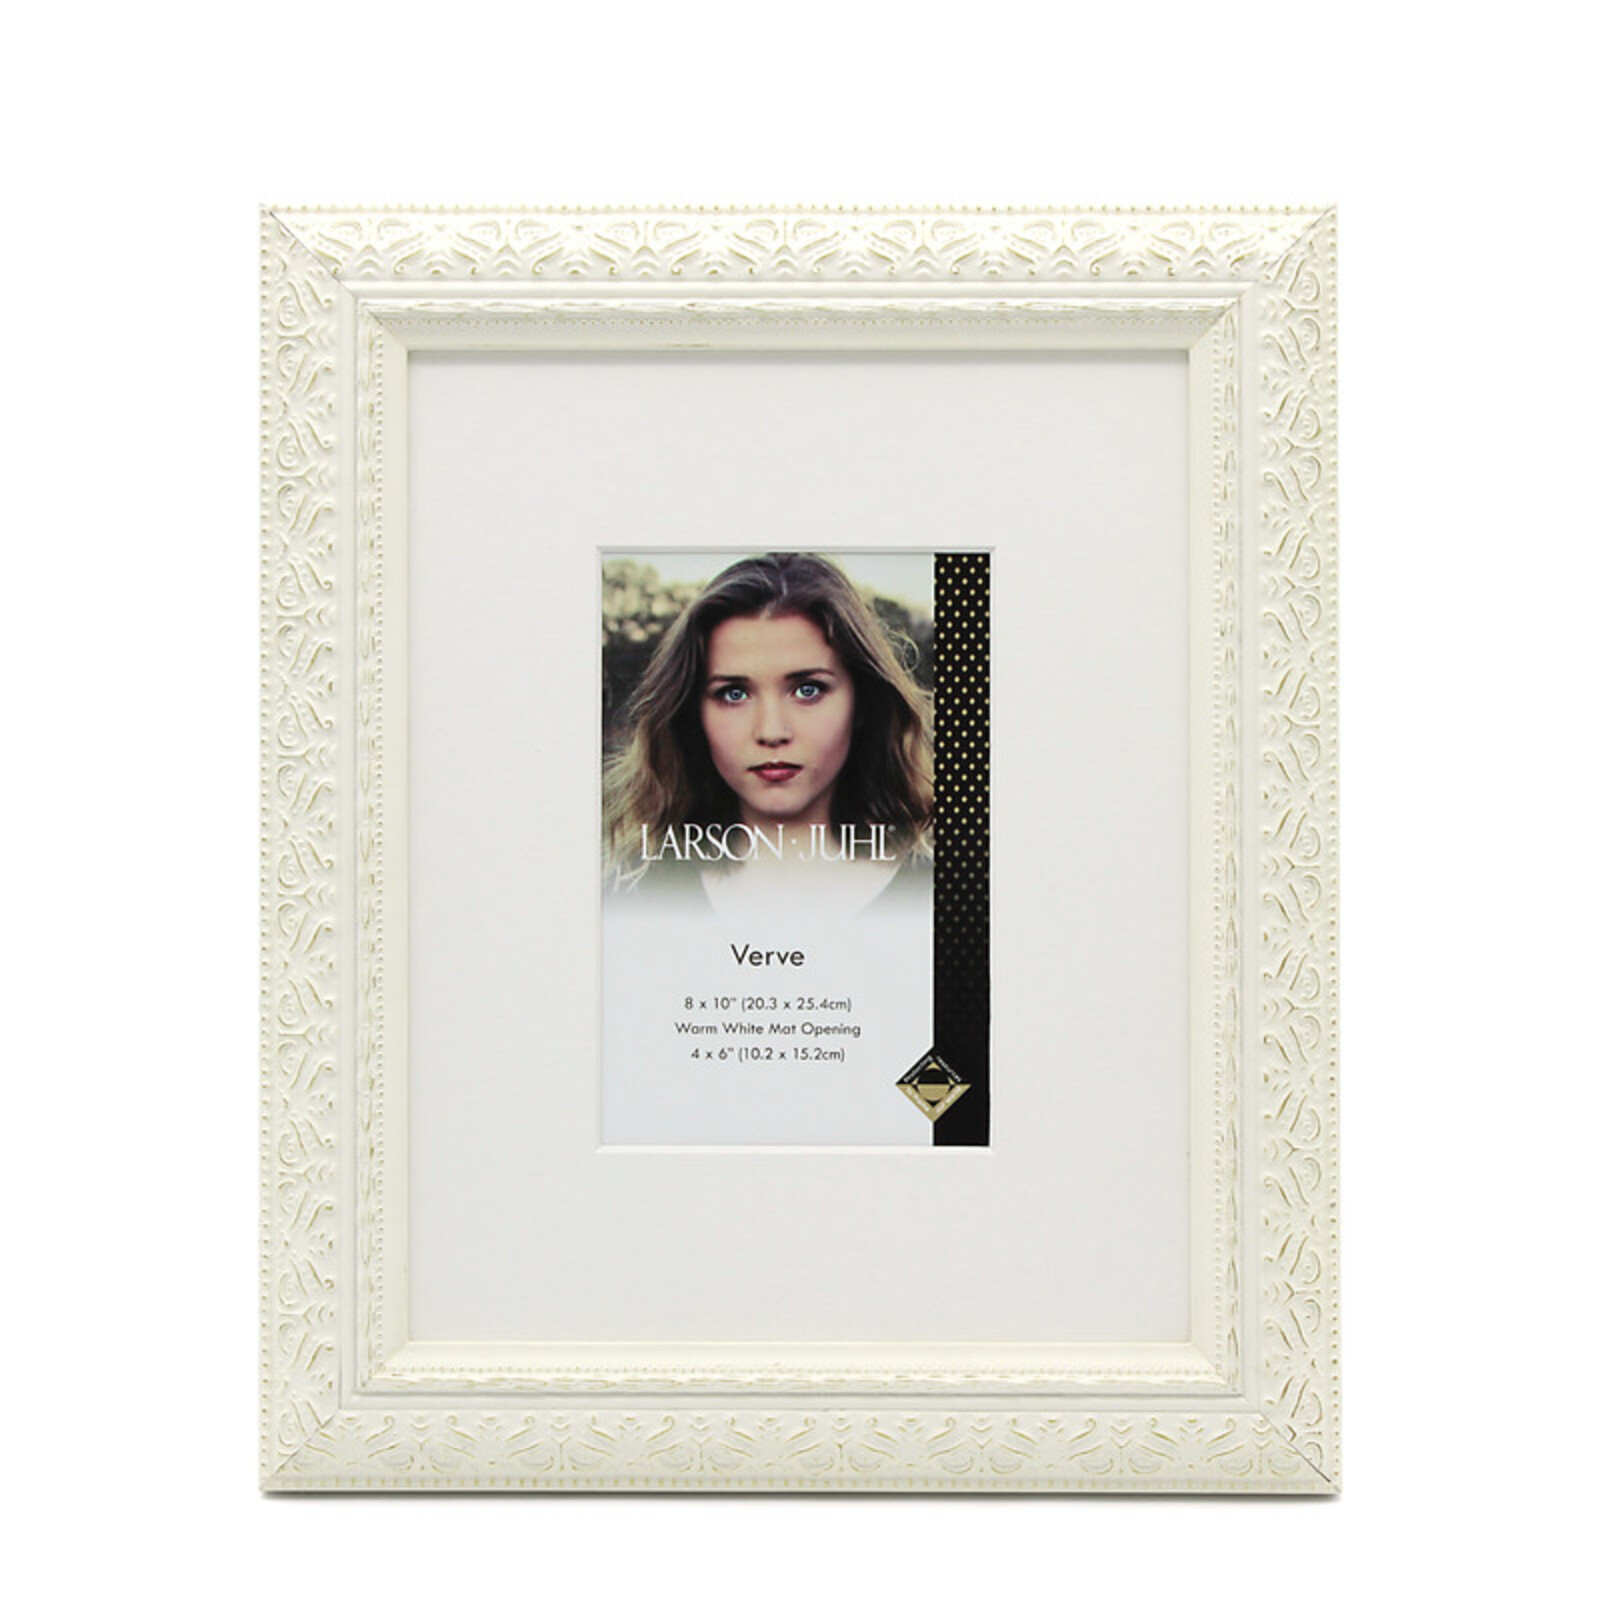 Verve 8 x 10inch/4 x 6inch Opening Matte White Photo Frame